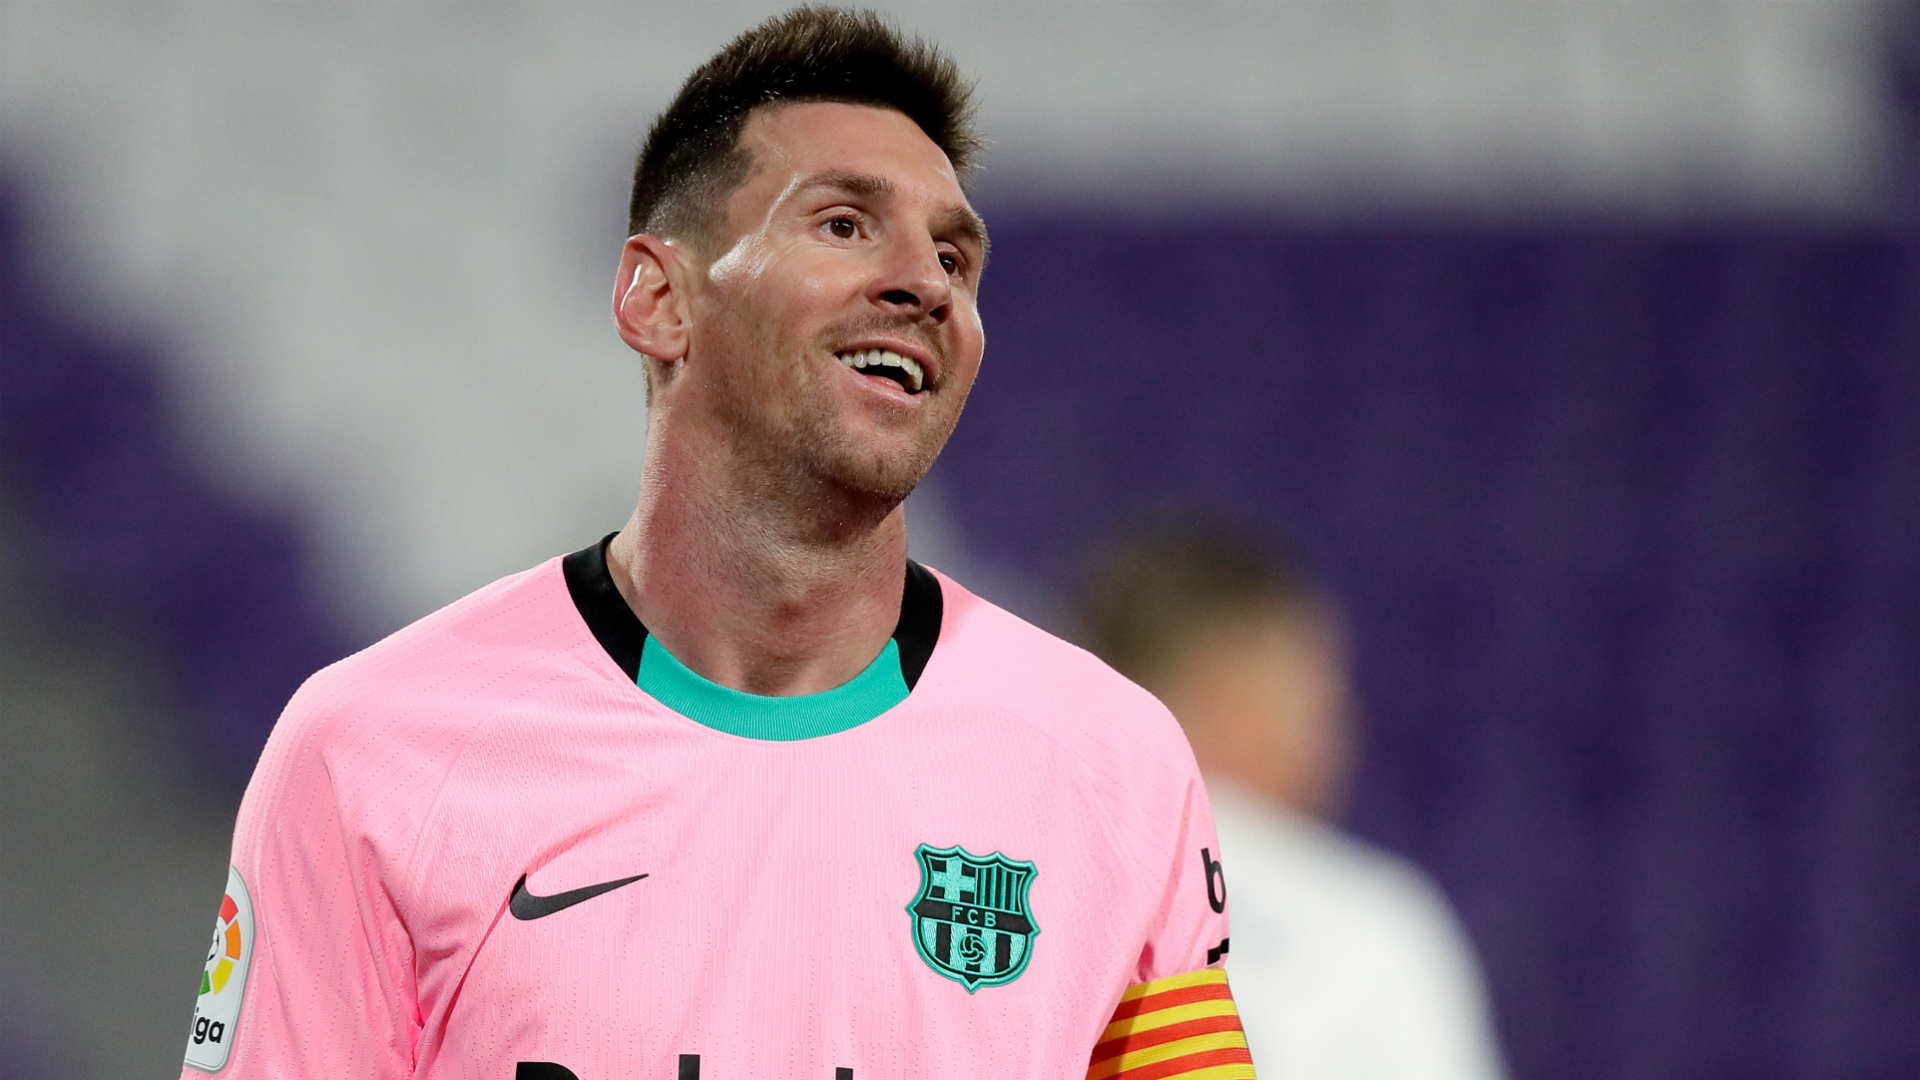 Messi reveals latest record exceeds expectations after Barca superstar surpasses Pele